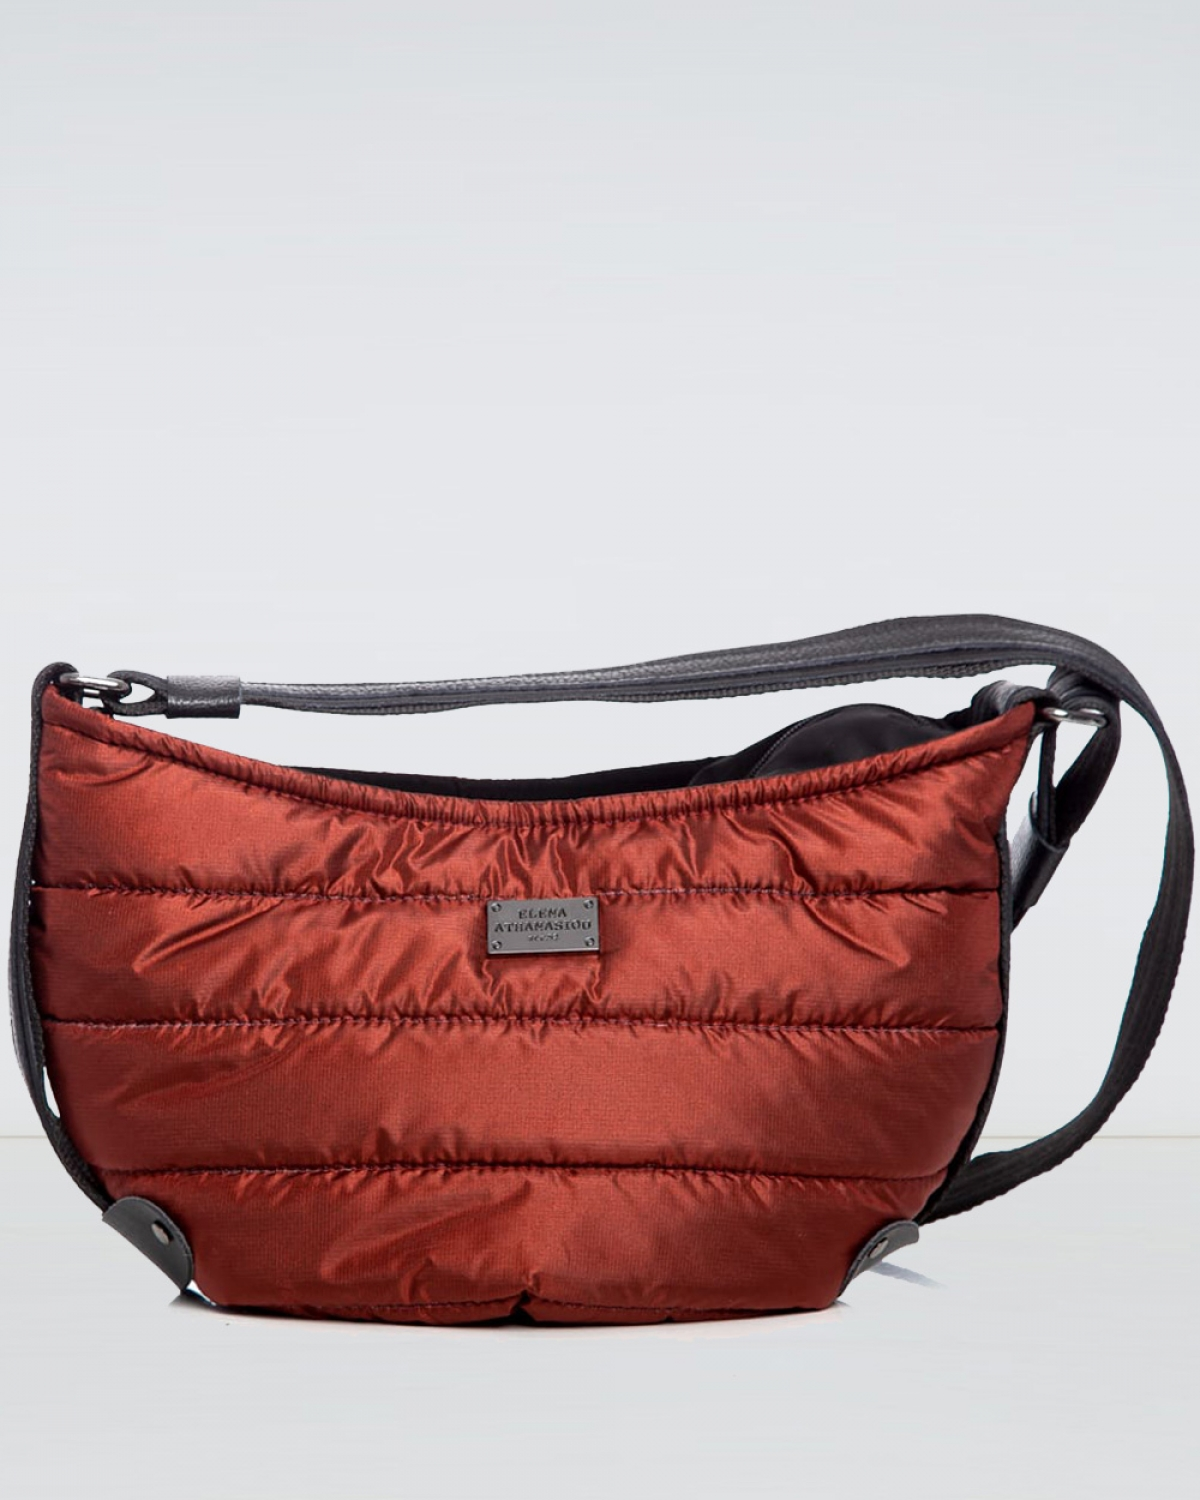 Brick Red Puffer Large Bοdy Bag